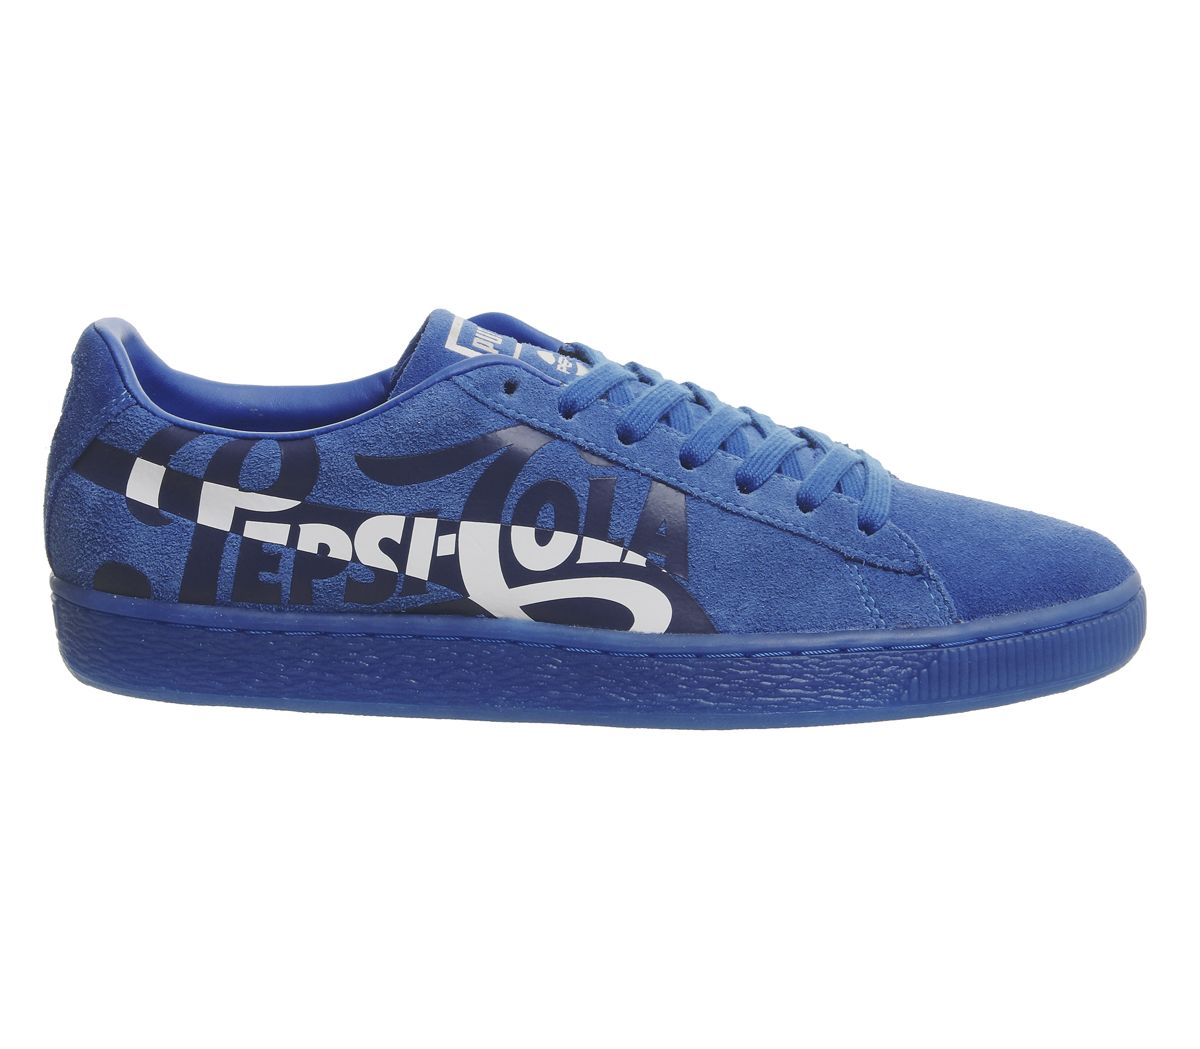 Details about Mens Puma Suede Classic Trainers Pepsi Clean Blue Puma Silver Trainers Shoes